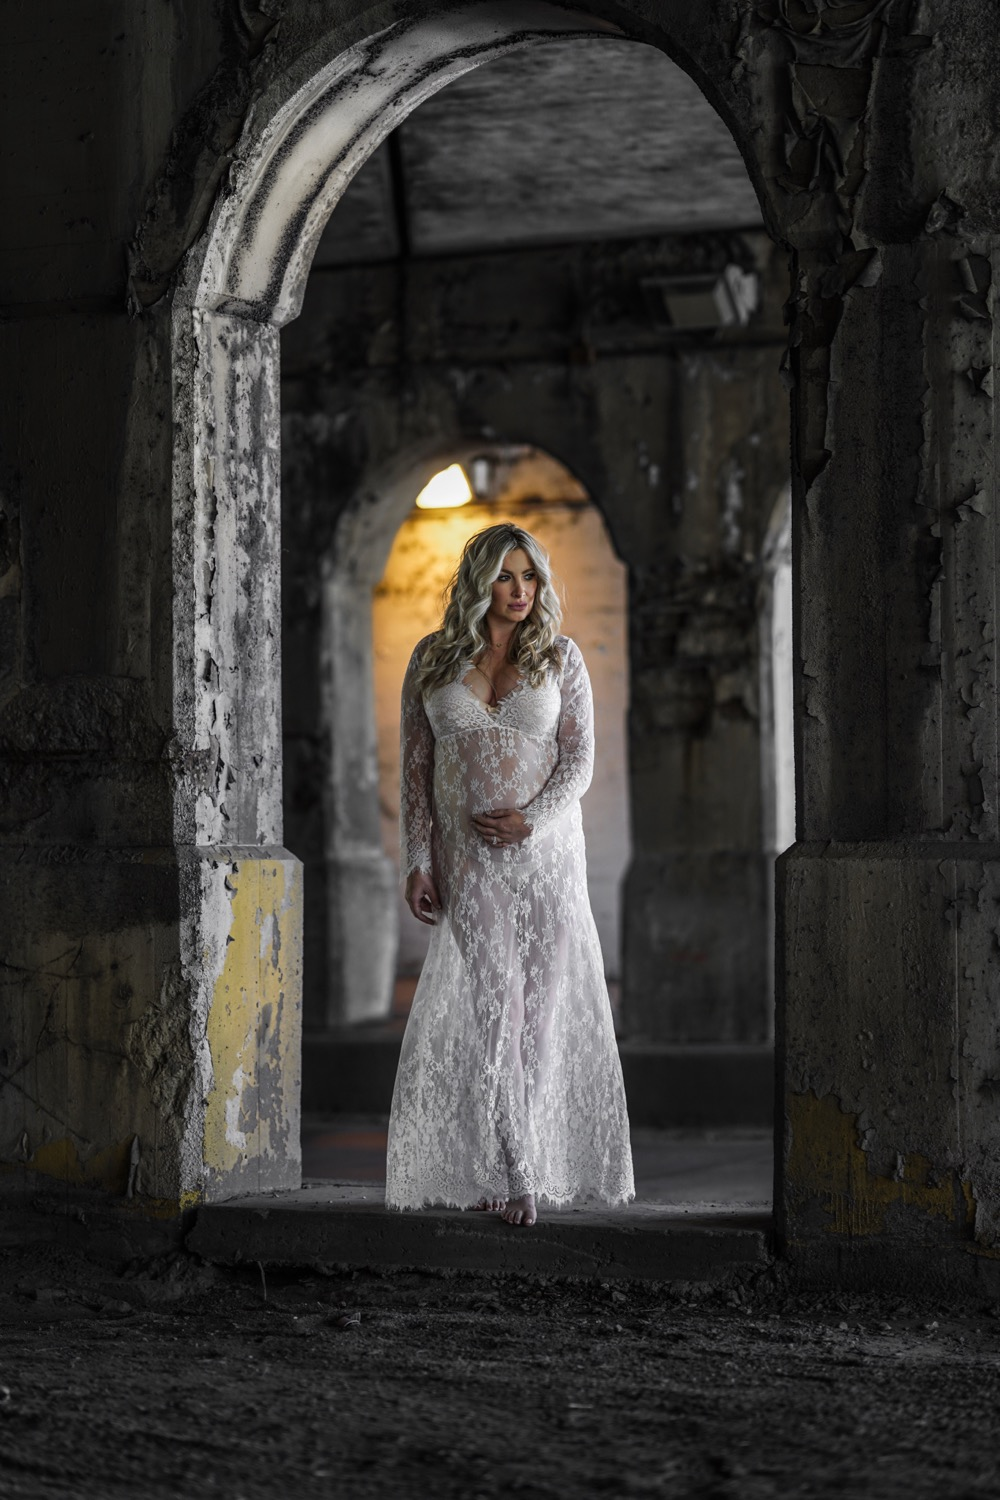 6b83eabb7e3 Lace Gown Maternity Photoshoot